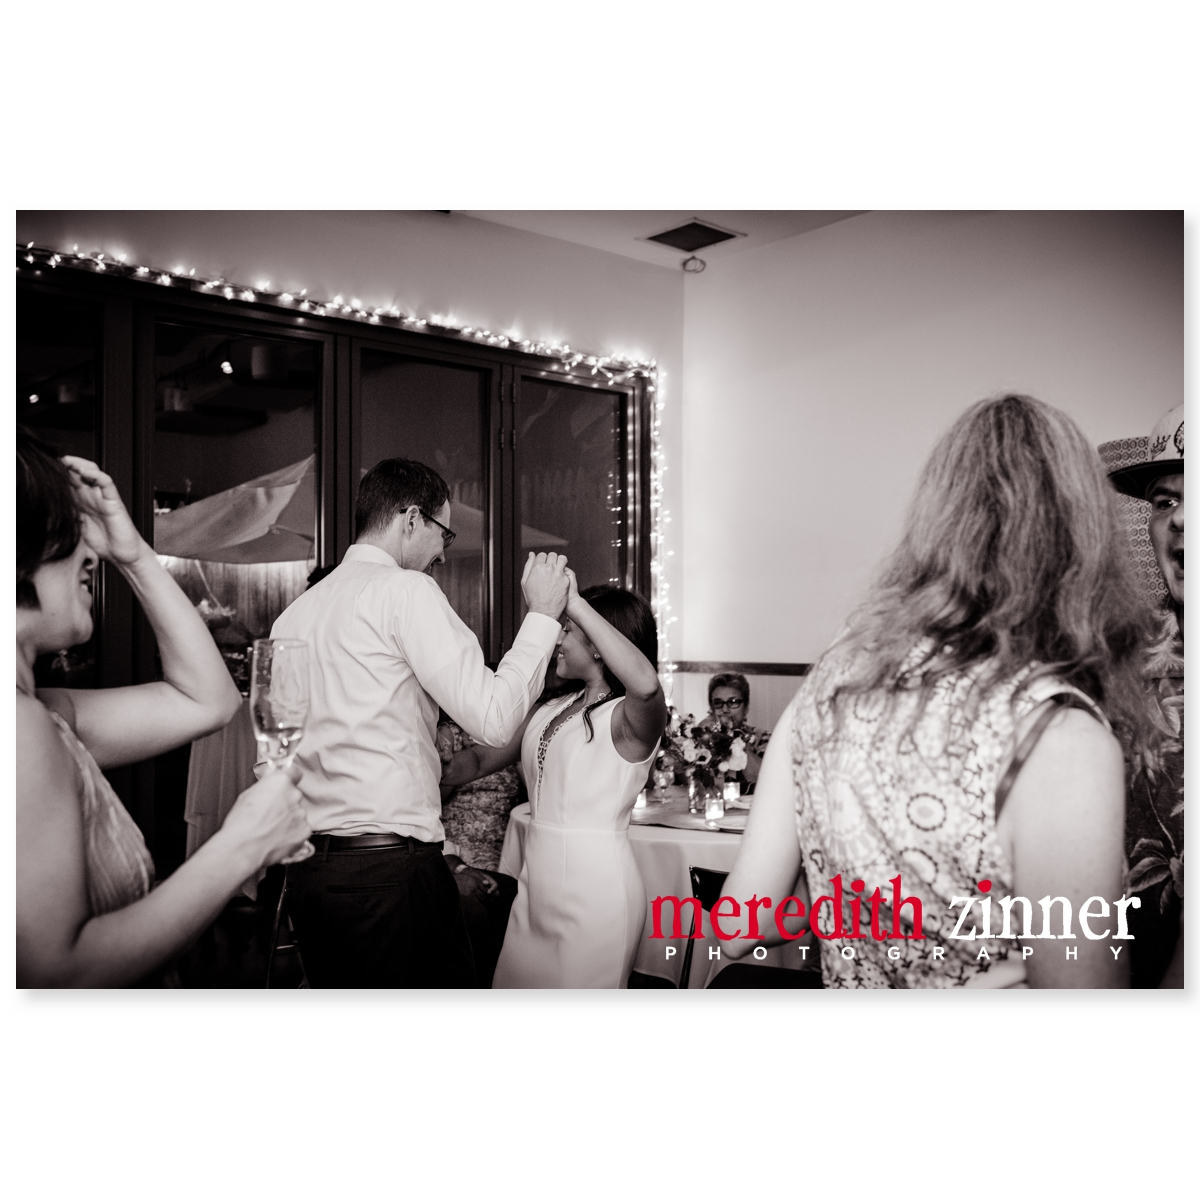 Meredith_Zinner_Photography_StilesCelebration_0389